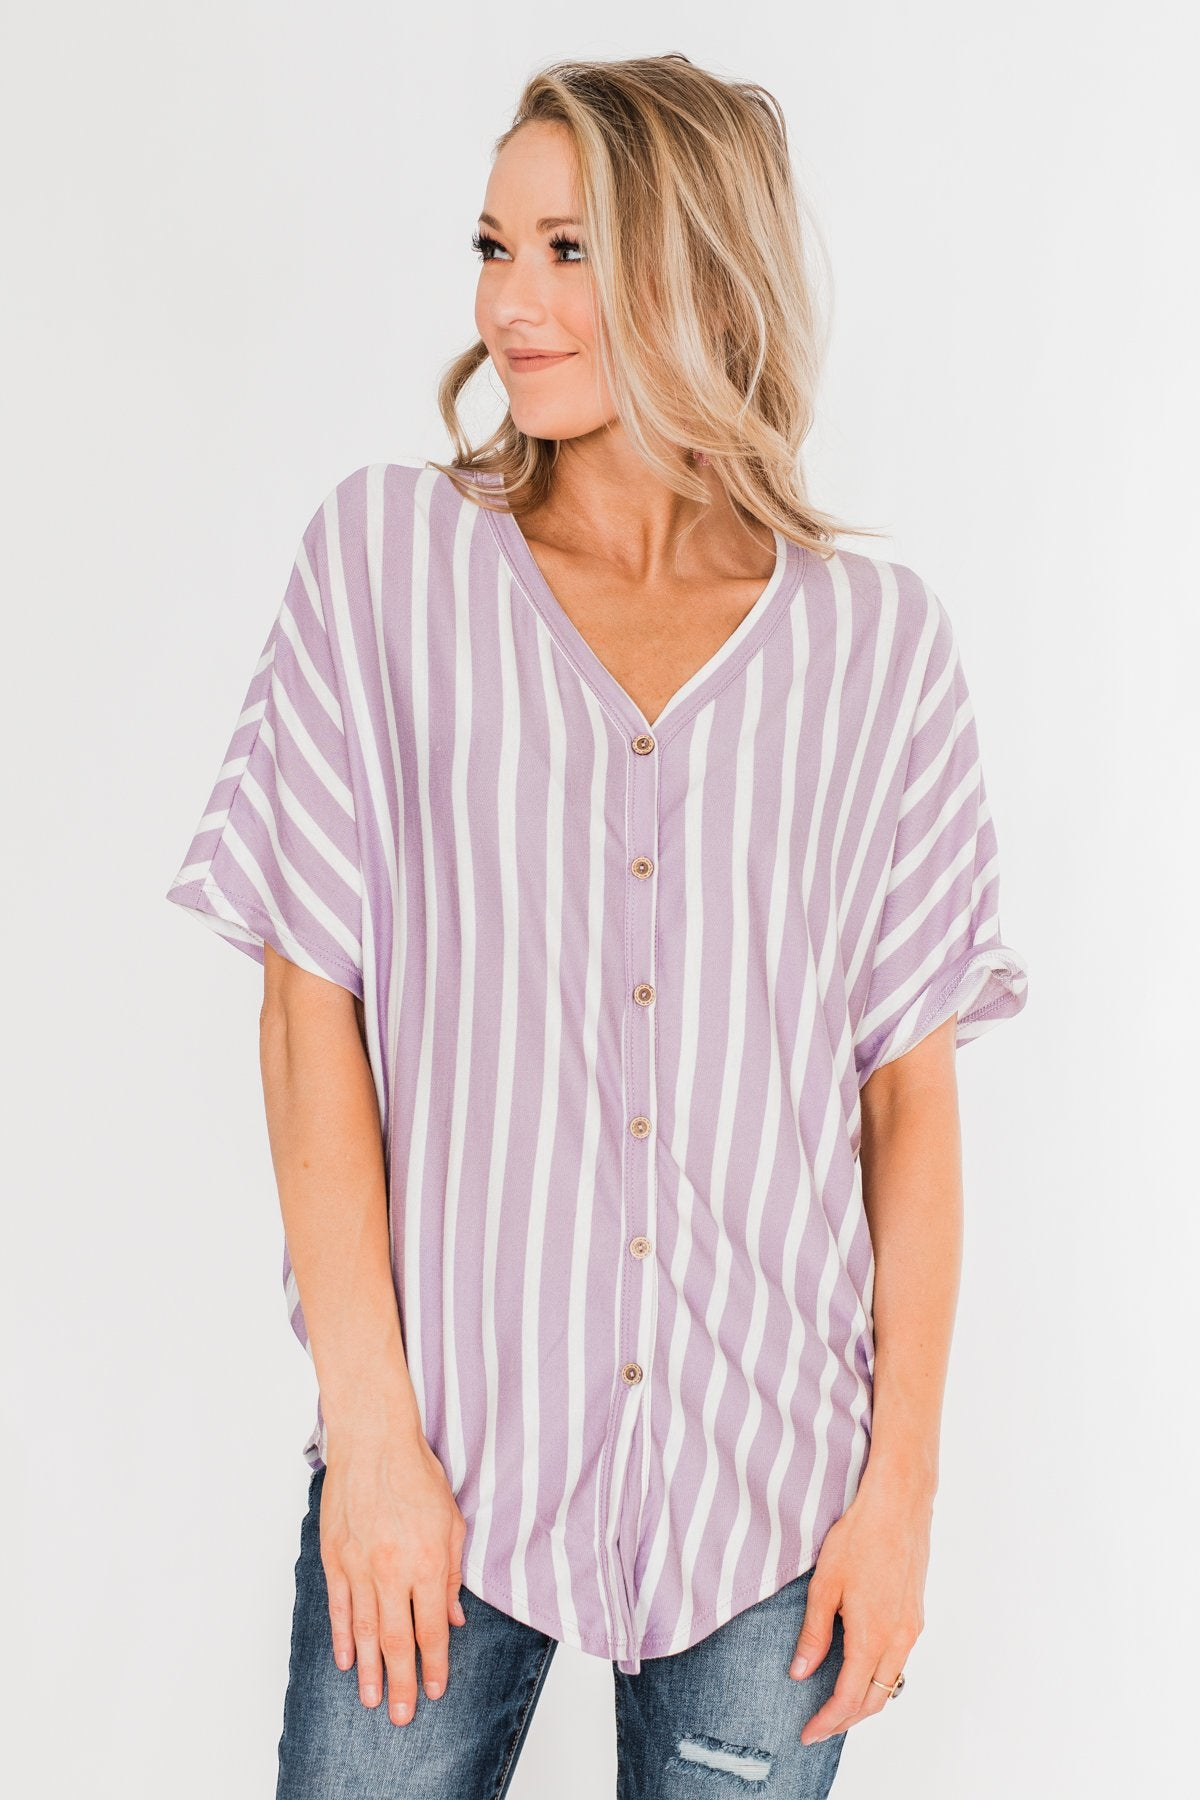 Calling The Shots Striped Dolman Top- Lavender